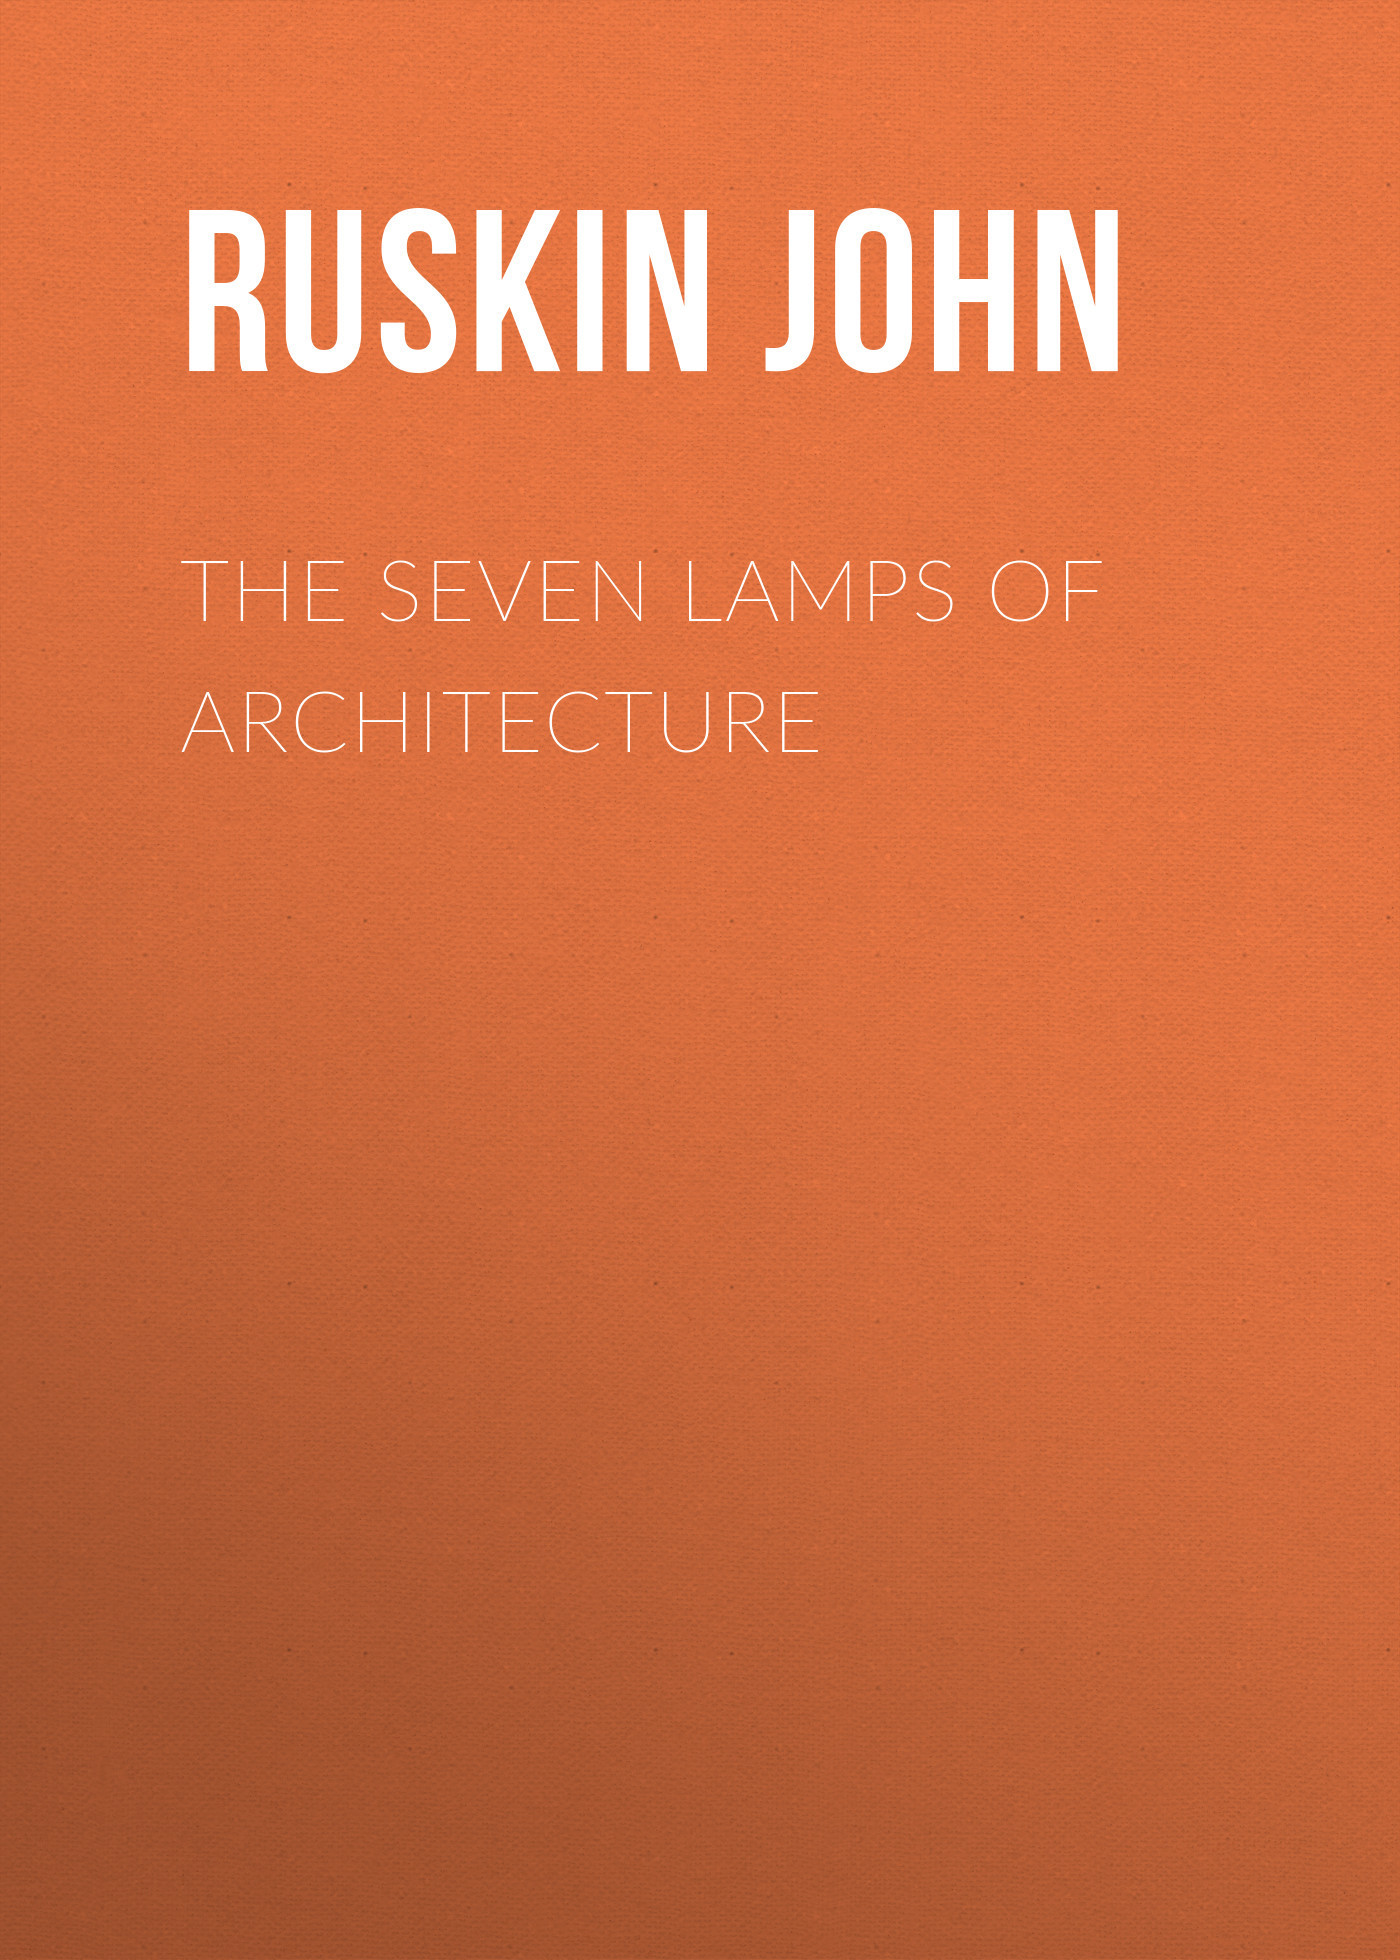 Ruskin John The Seven Lamps of Architecture between earth and heaven the architecture of john lautner